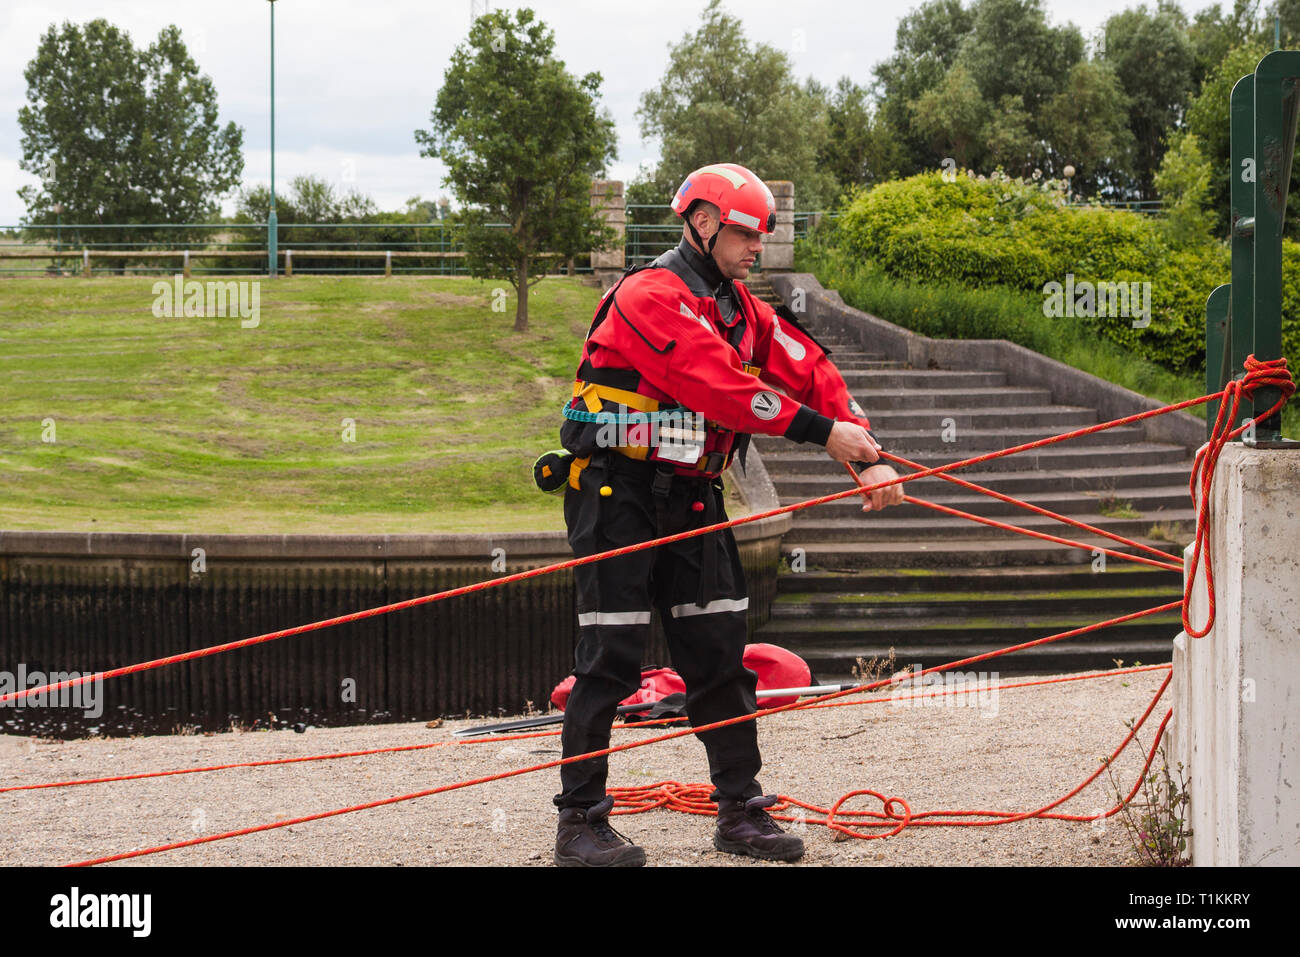 Humberside Fire and Rescue Service doing a river rescue training exercise at the Tees Barrage,Stockton-on-Tees,England,UK - Stock Image